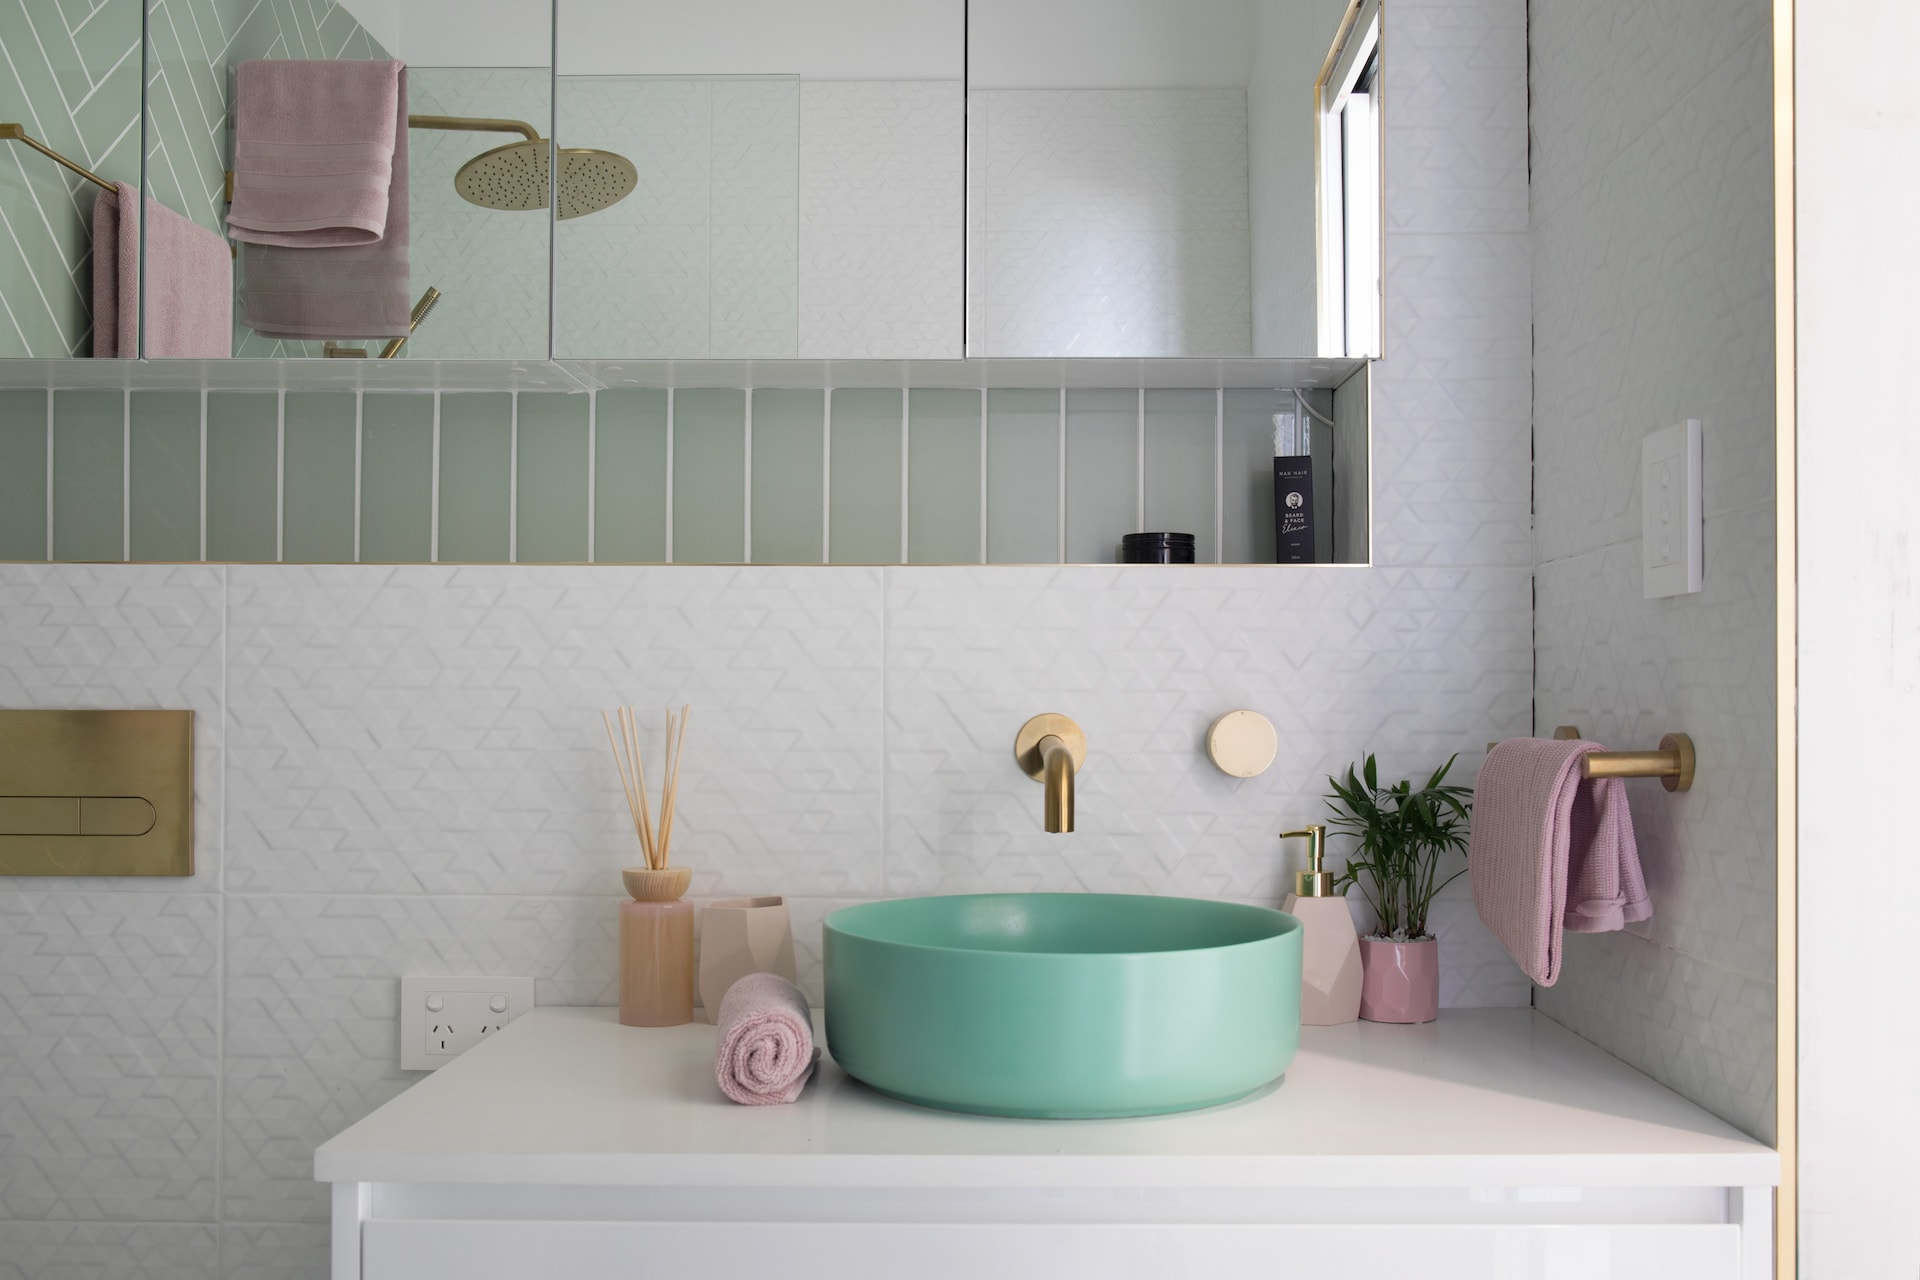 house rules 2020 penthouse reveal bathroom with mint green basin